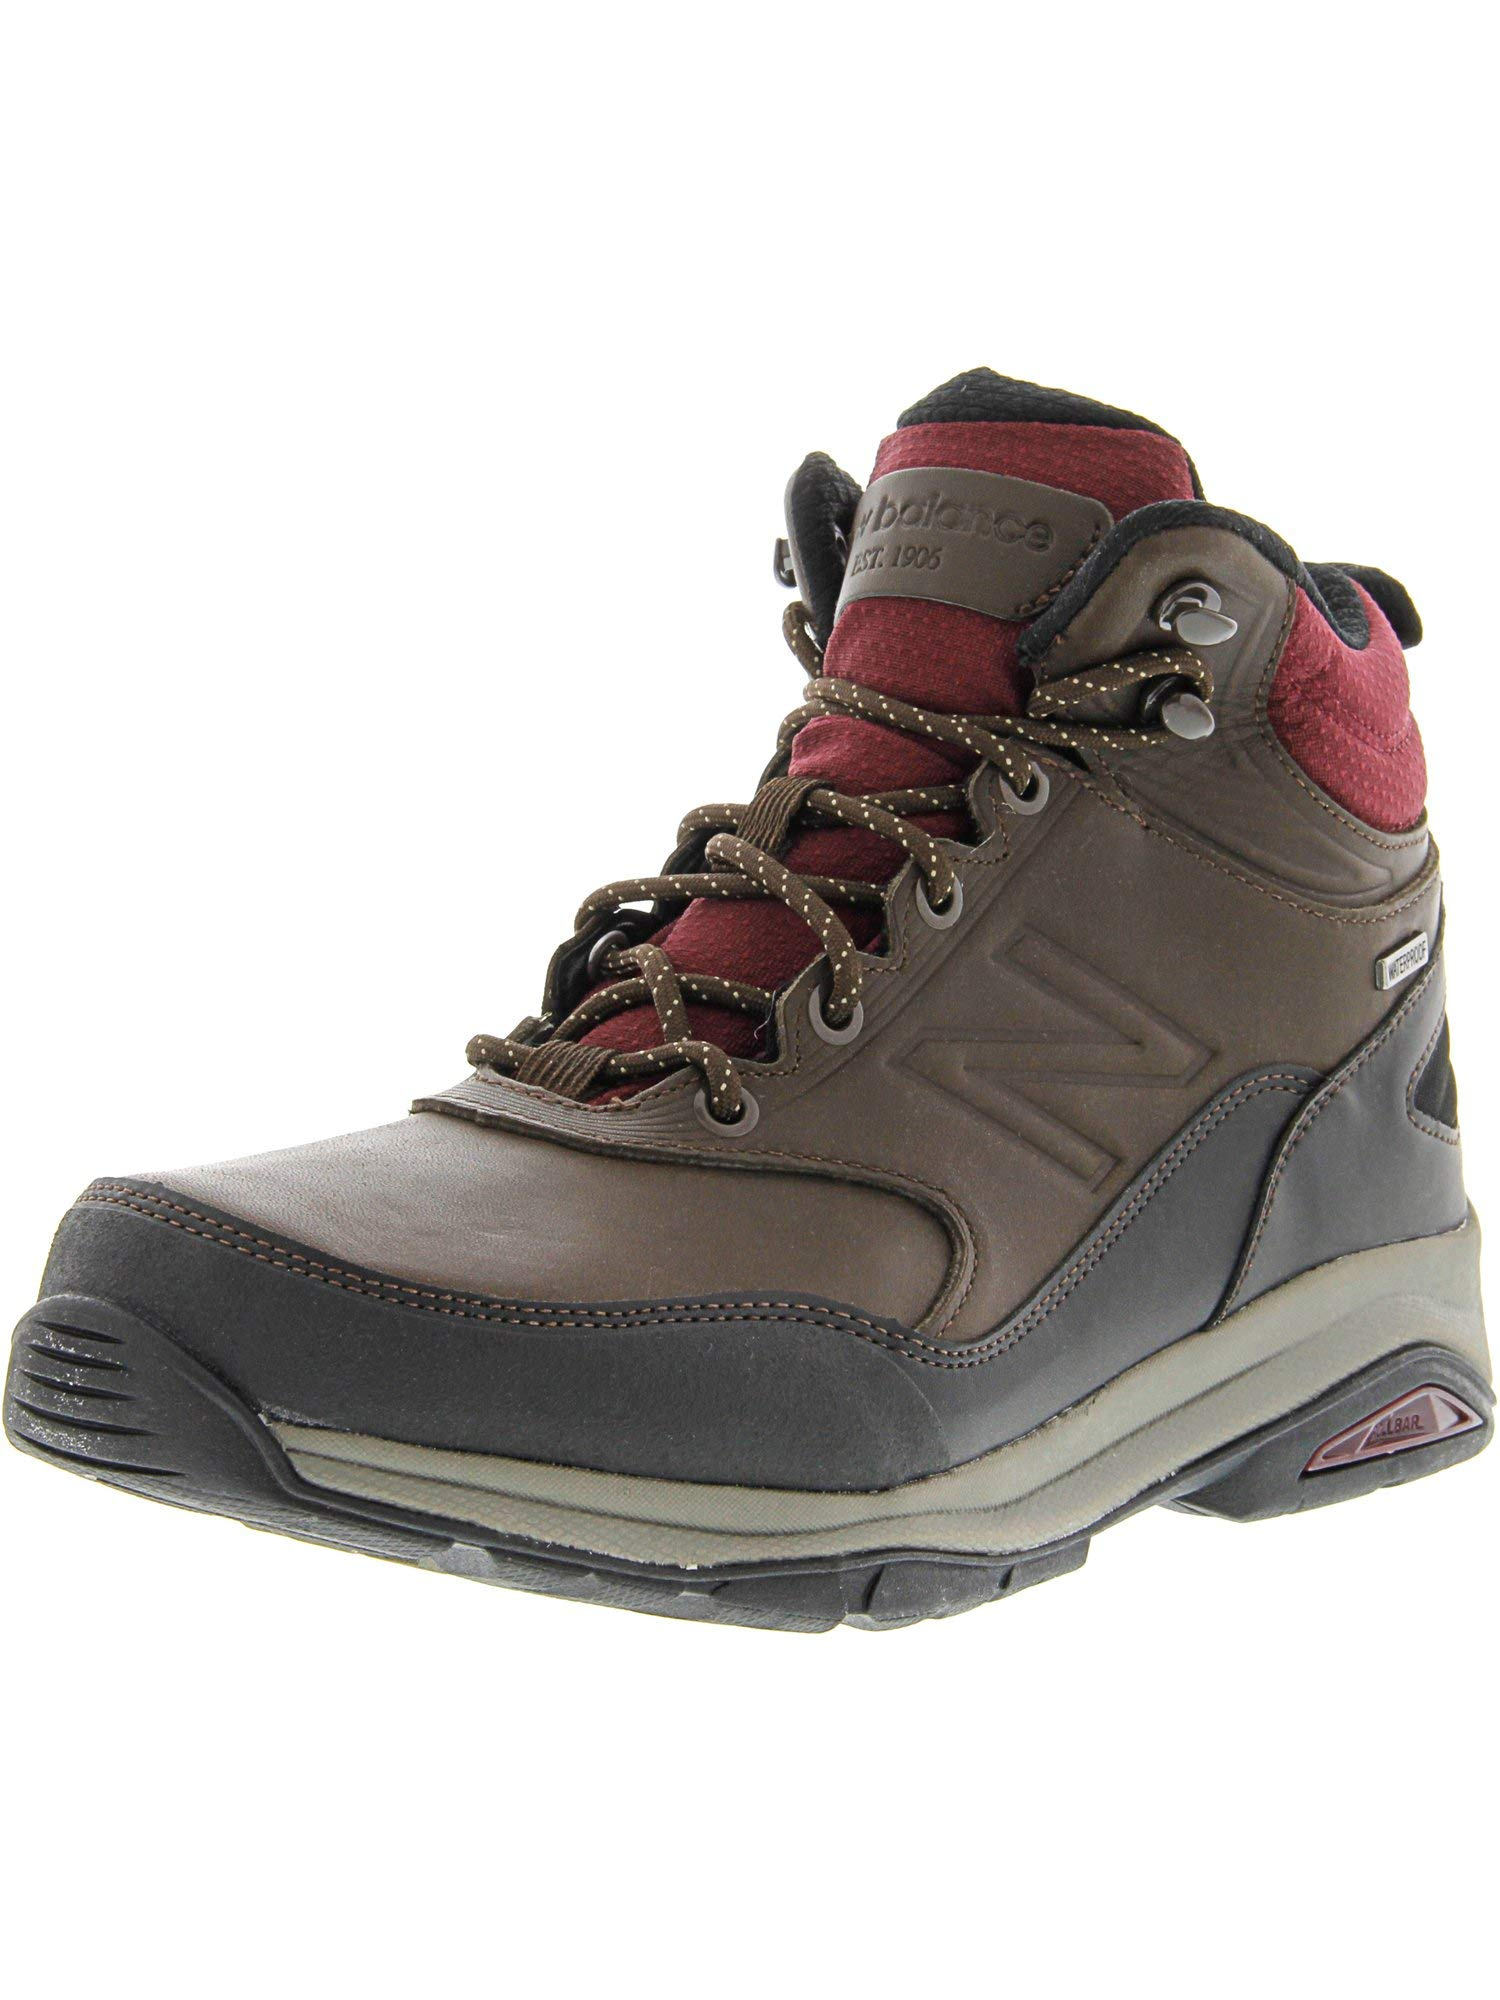 New Balance Women's Ww1400 Db Ankle-High Leather Backpacking Boot - 6.5M by New Balance